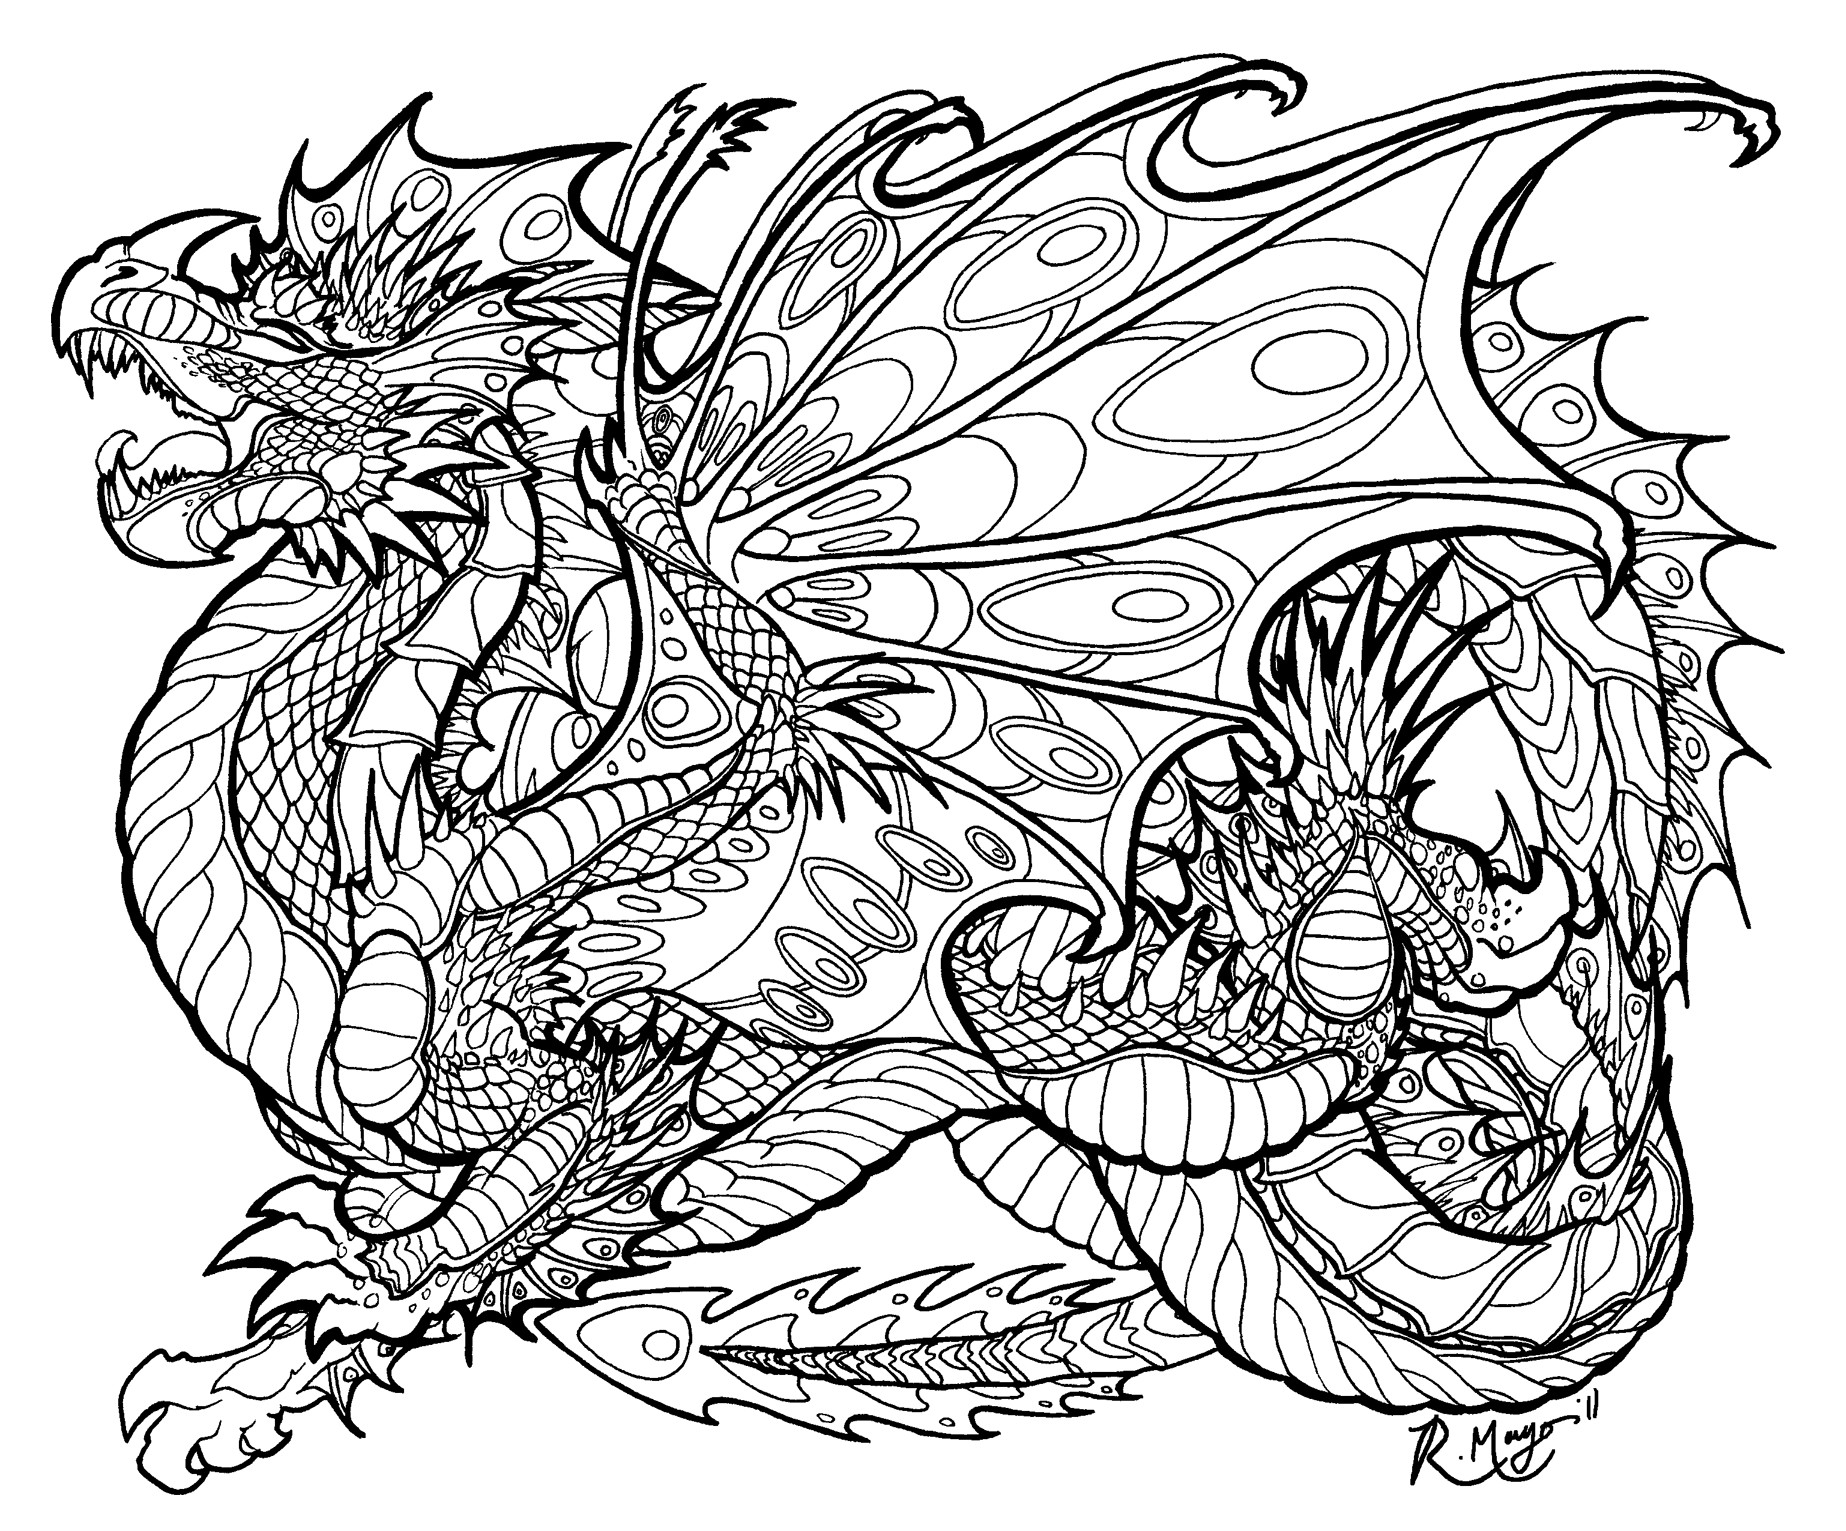 Best ideas about Dragon Adult Coloring Books . Save or Pin Evil Dragon Coloring Pages for Adults to Print Now.